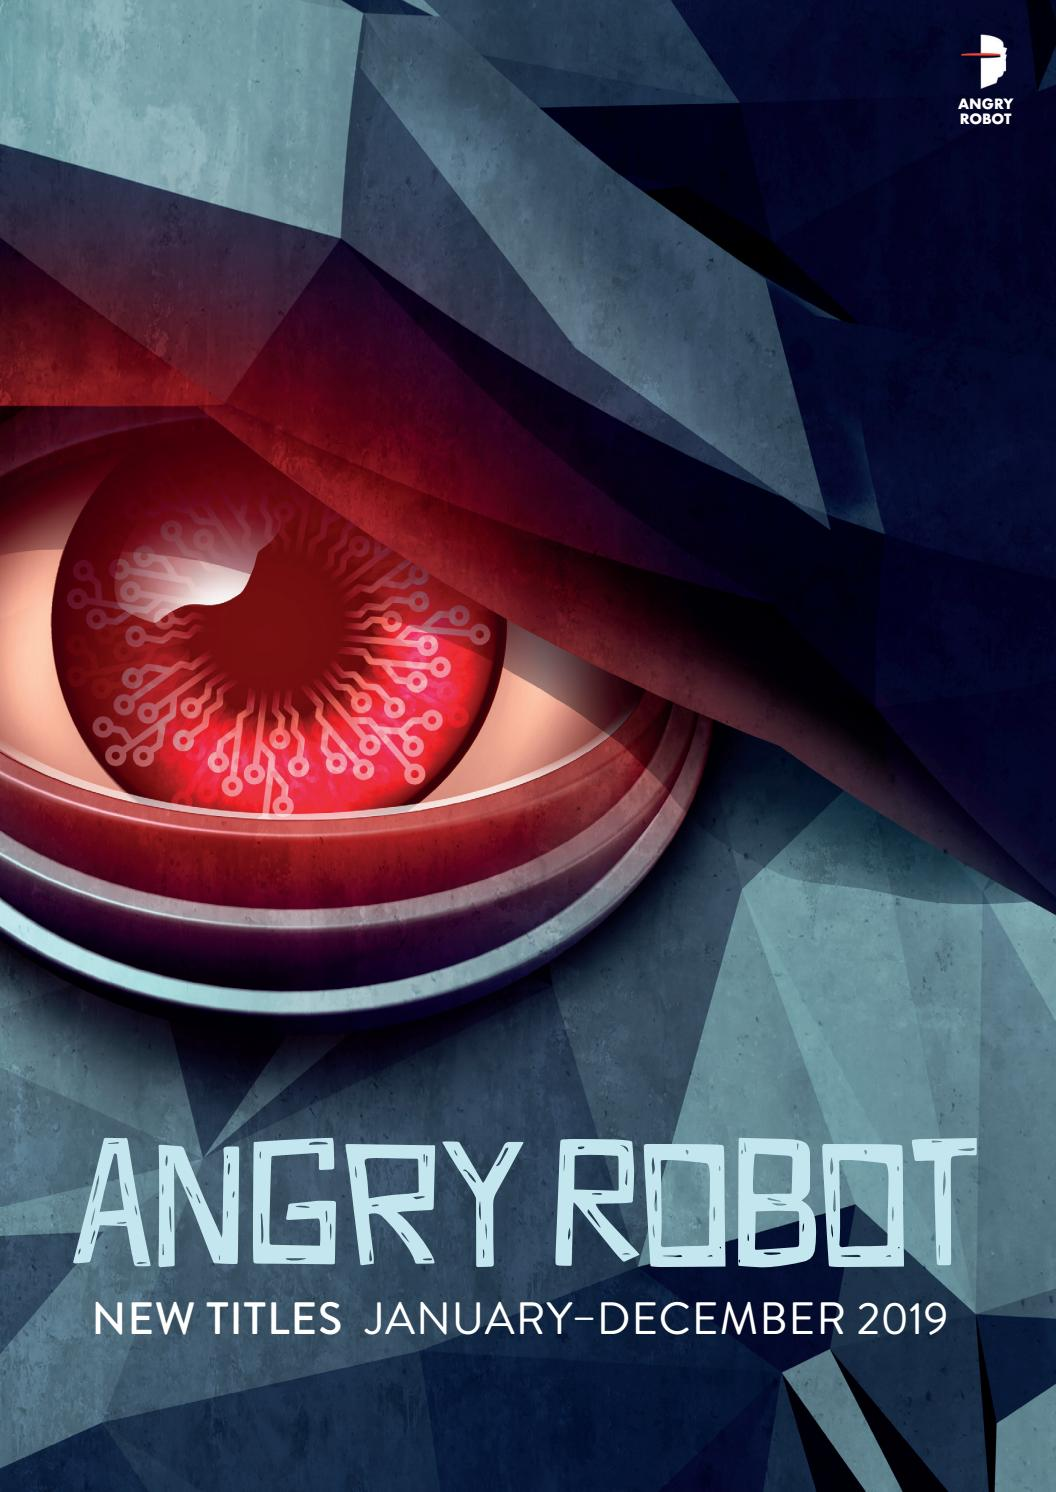 New Title Catalogue from Angry Robot Books 2019 by Angry